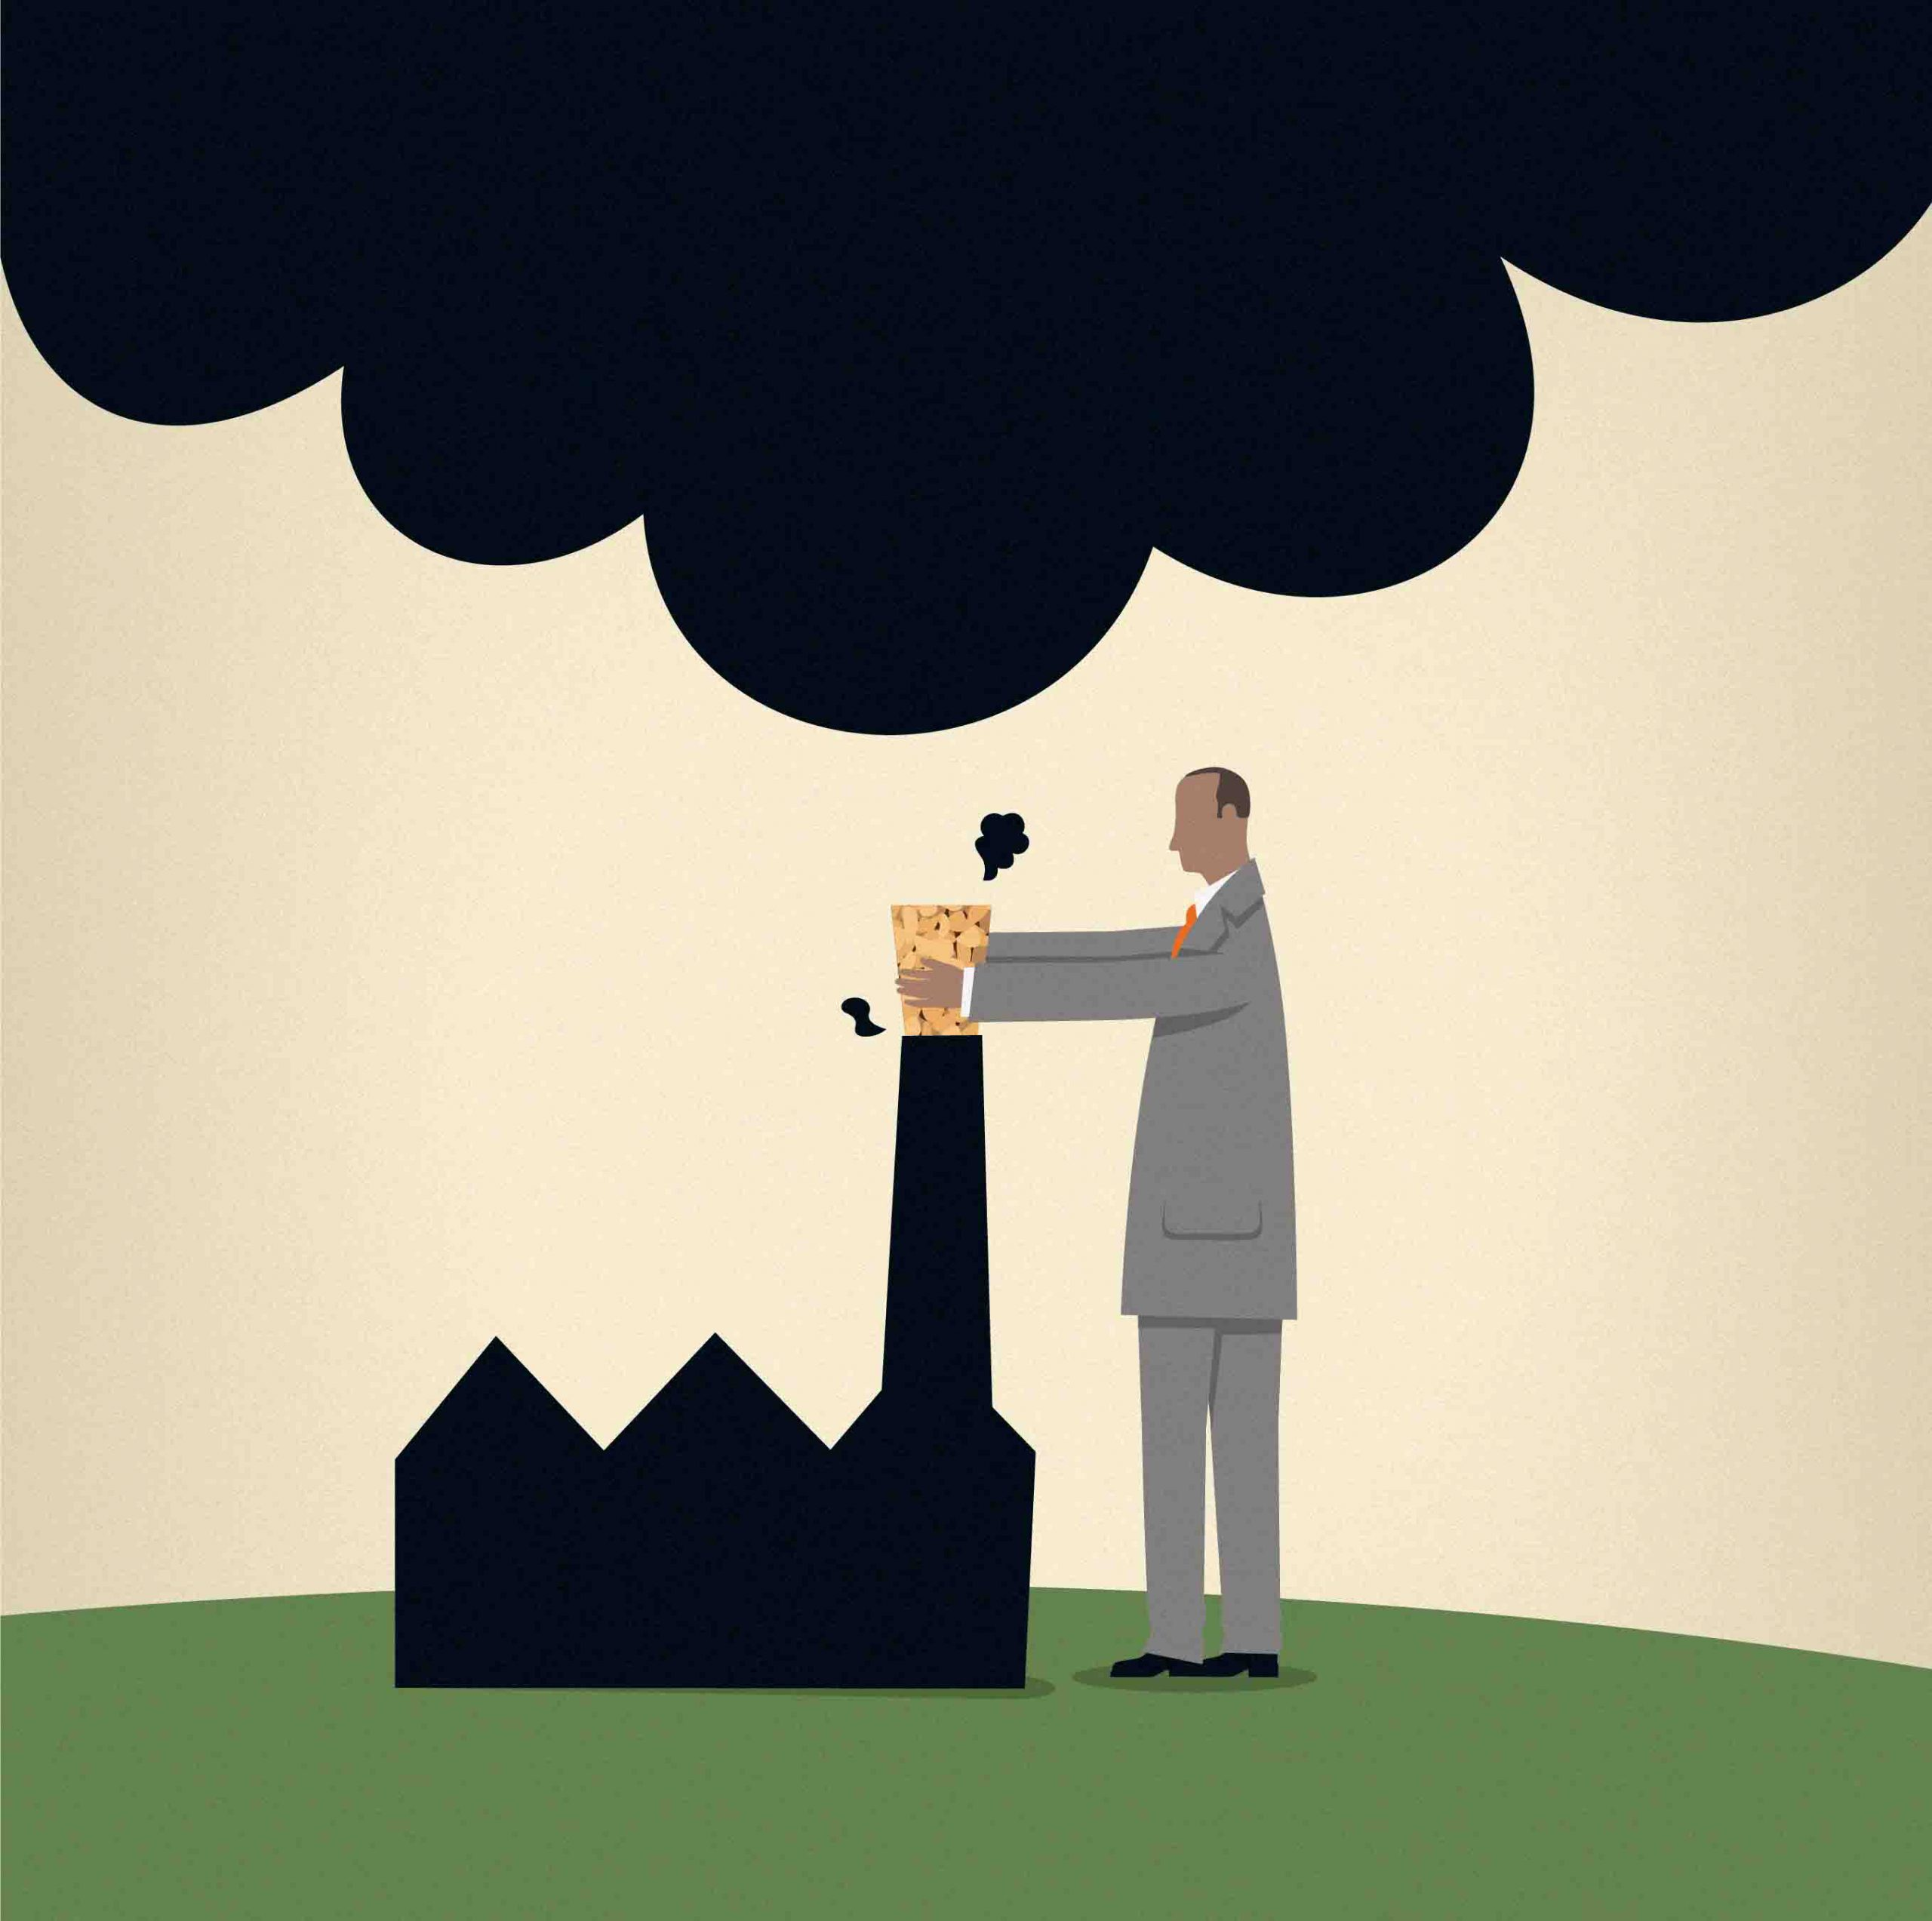 Large businesses and organisations can reduce their emissions and carbon footprint